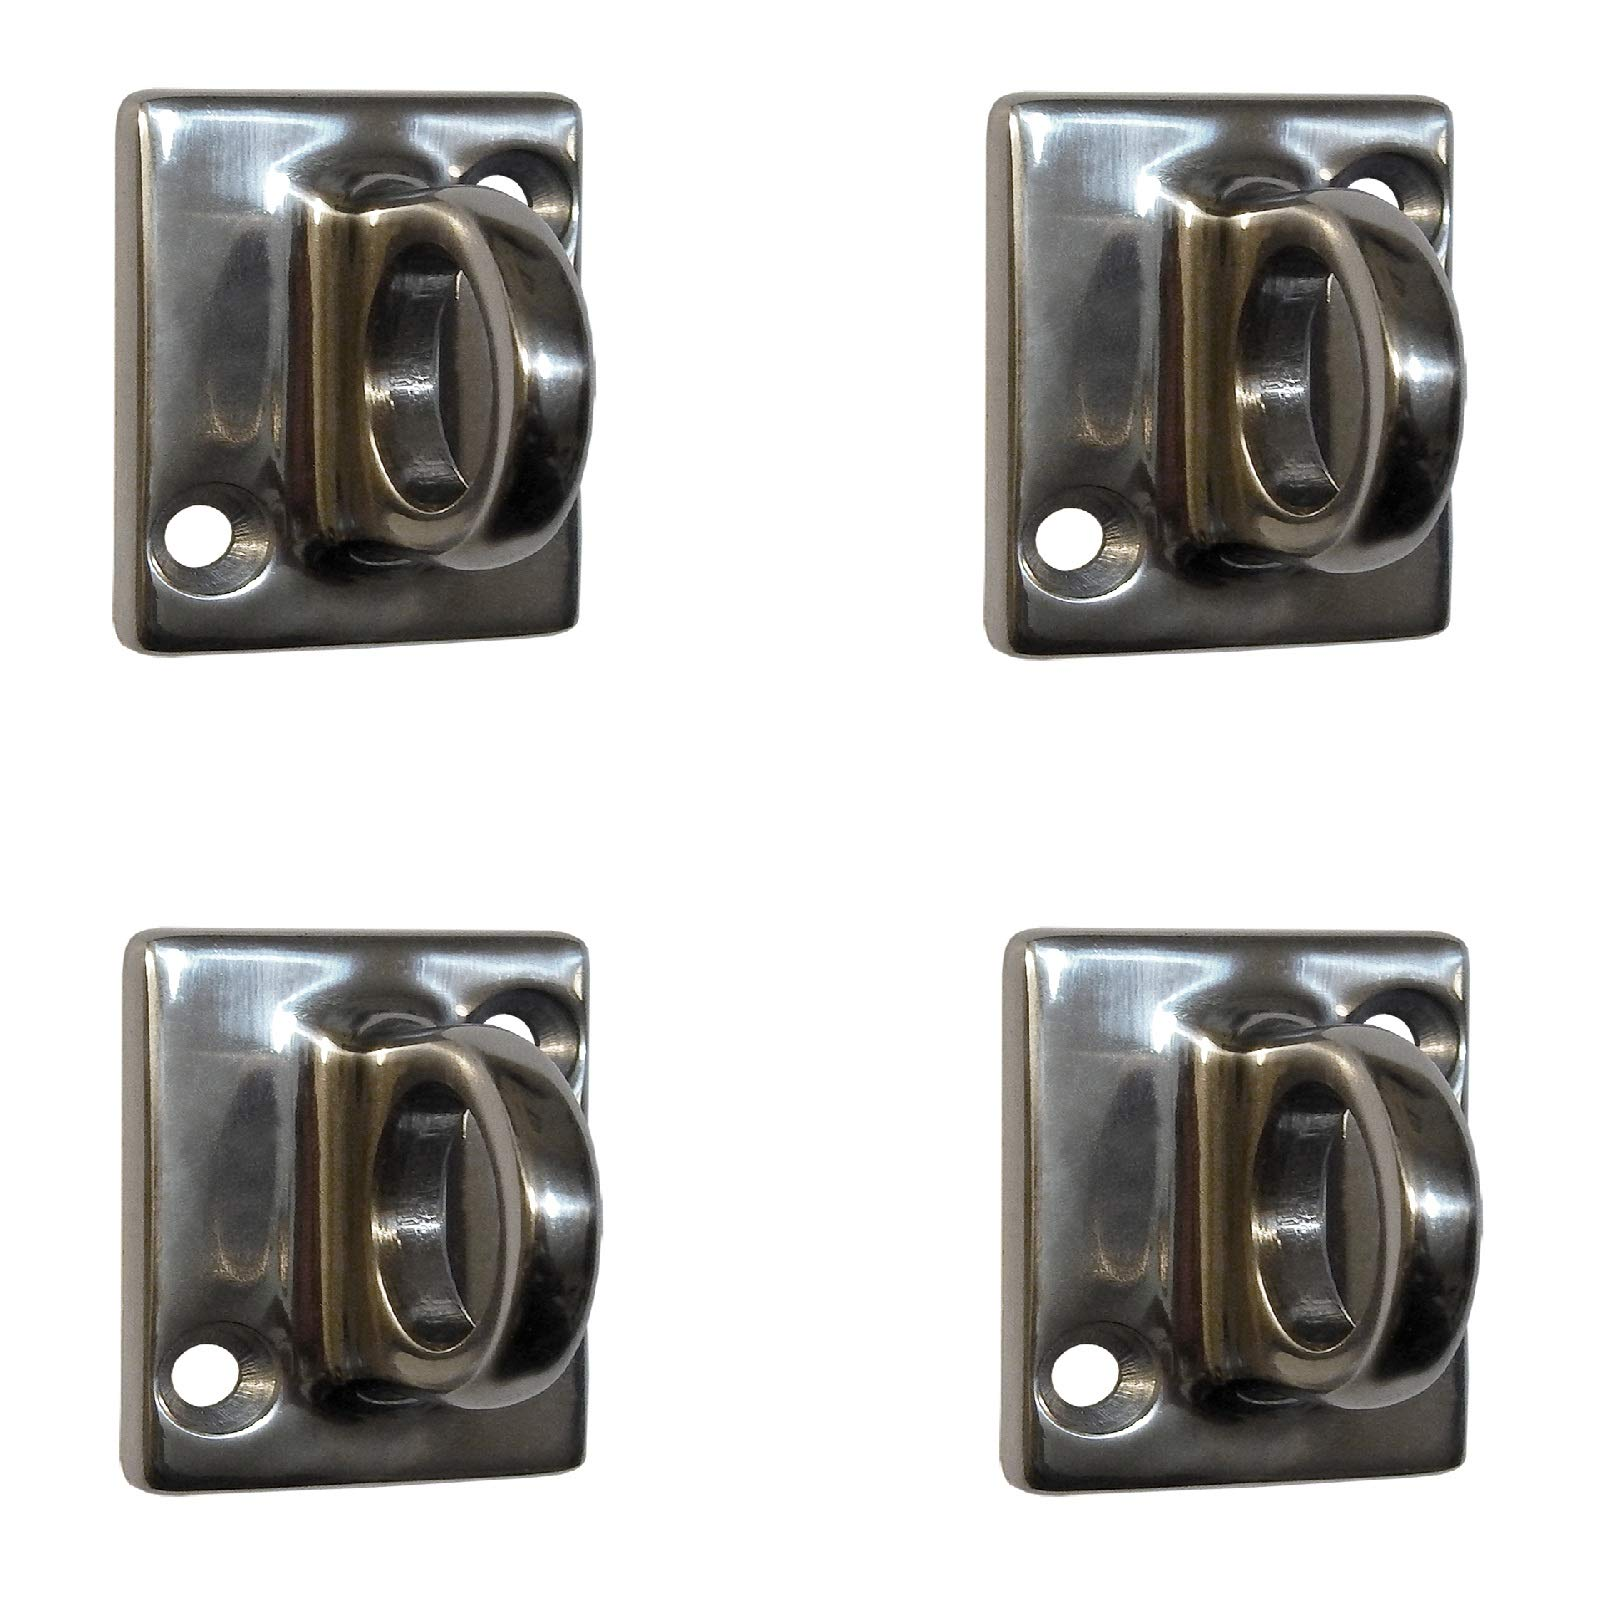 Rope Stanchion Decorative Stainless Steel Wall Plate Holder, CROWD CONTROL CENTER (4 pcs Mirror) by Crowd Control Center